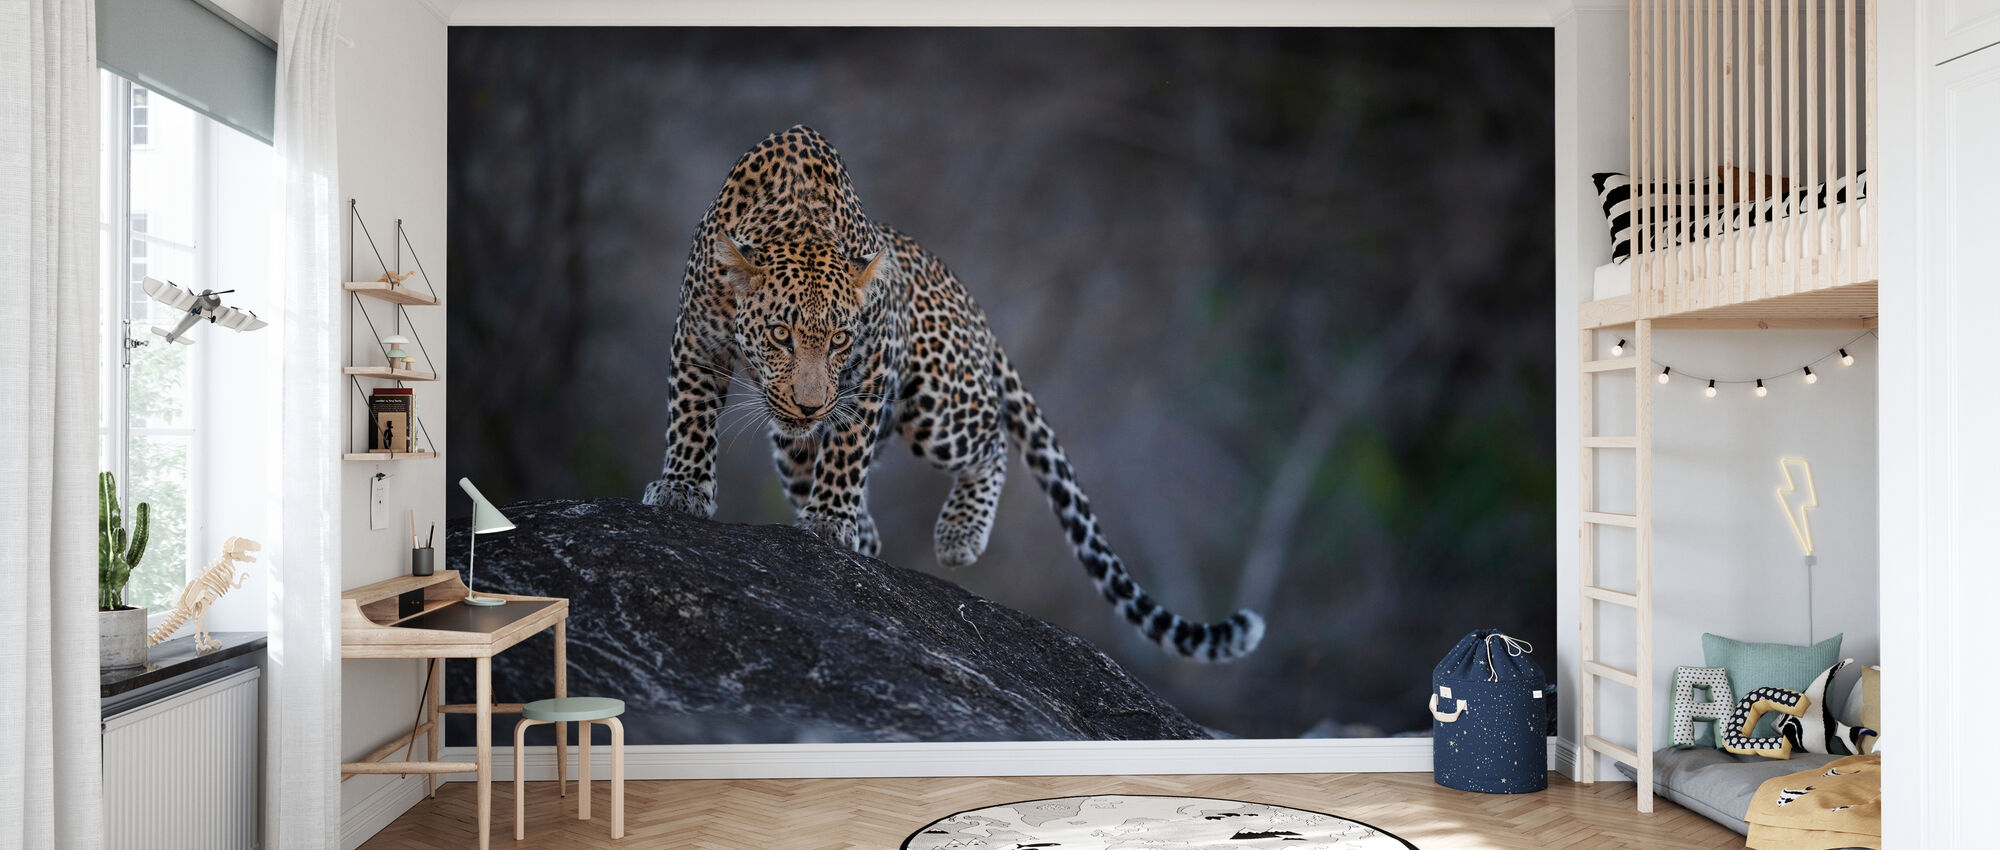 Leopard on a Rock - Wallpaper - Kids Room